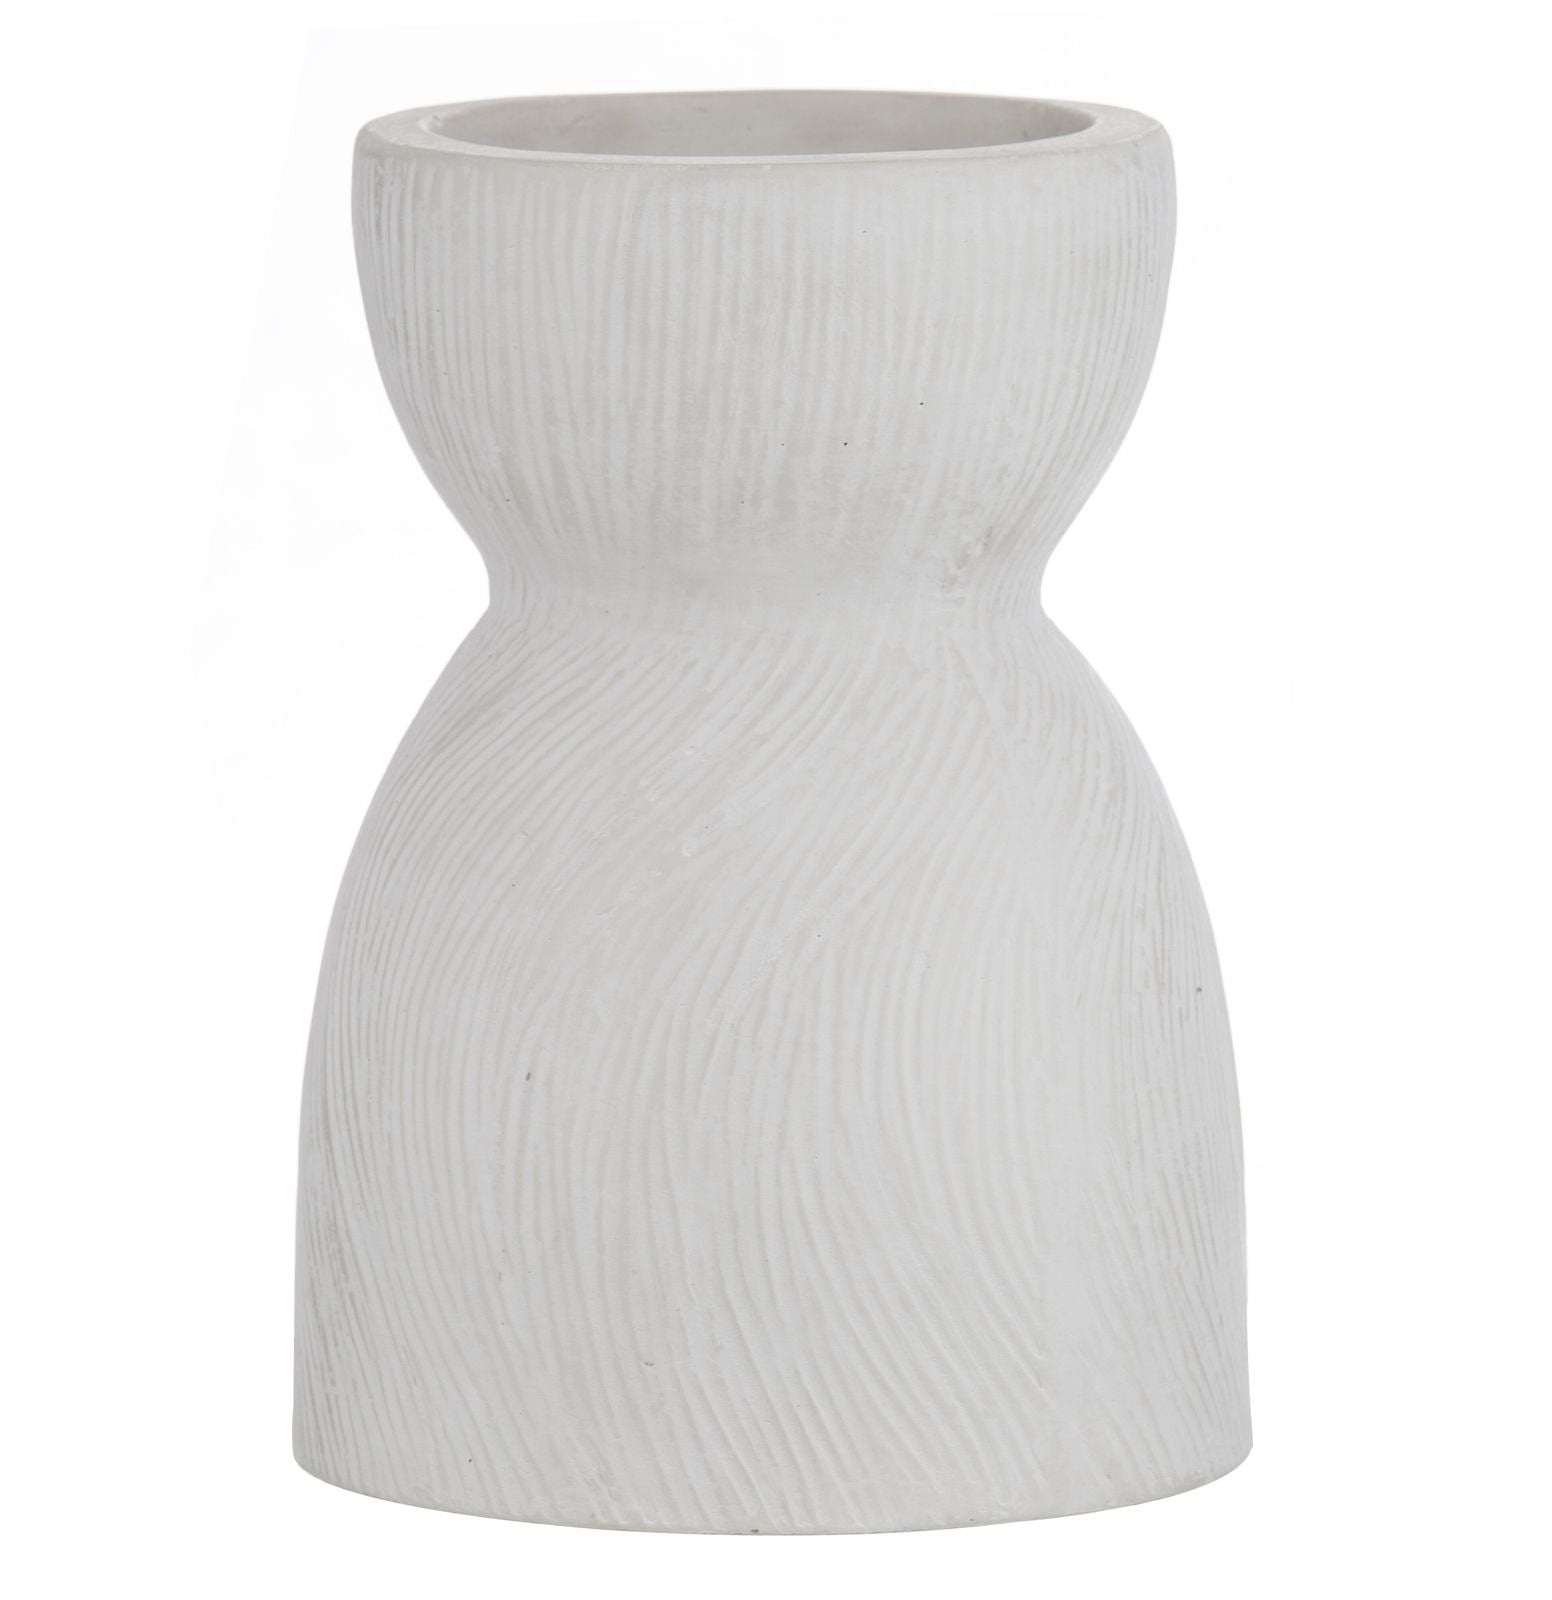 Grand Designs: Museo Candle Holder - Eggshell